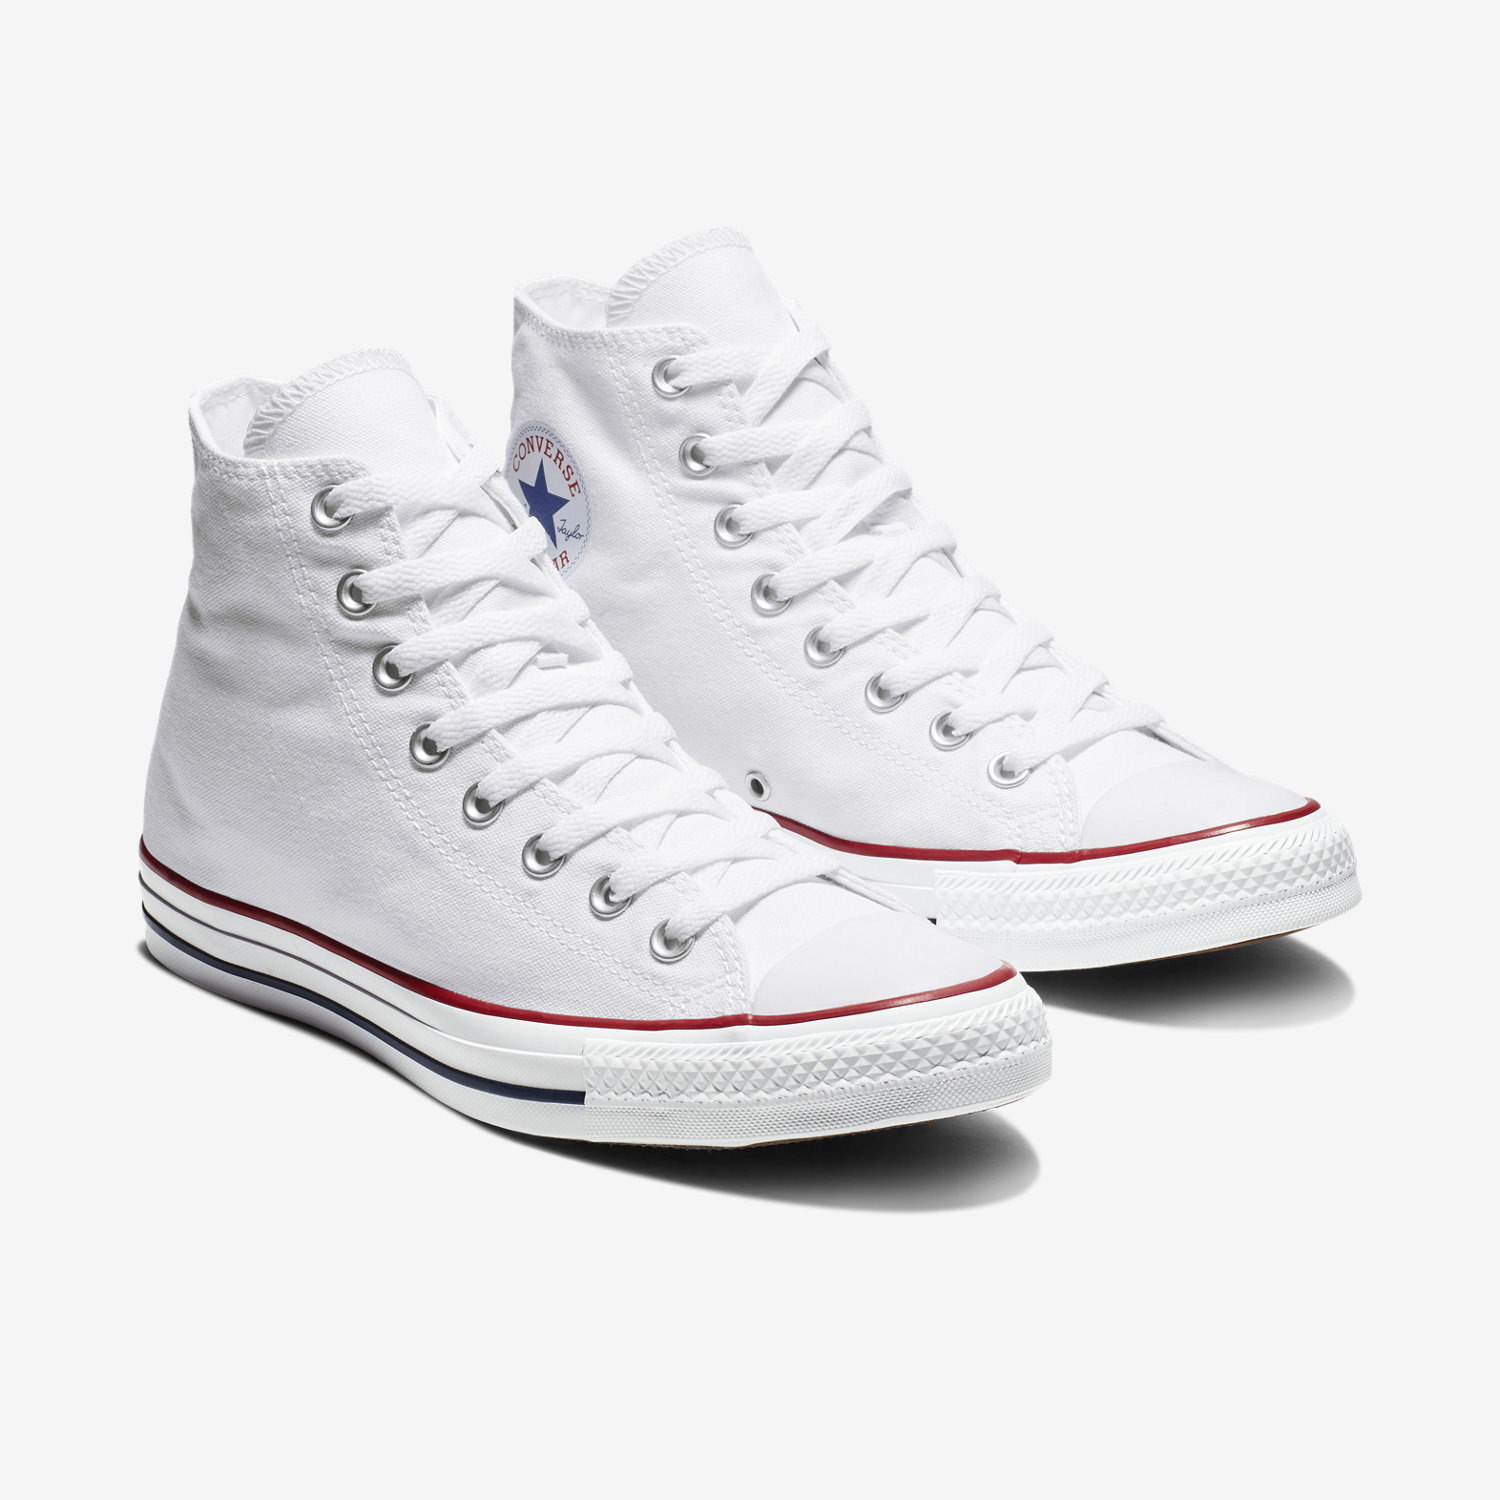 CHUCK TAYLOR ALL STAR - Sneaker high - blanc